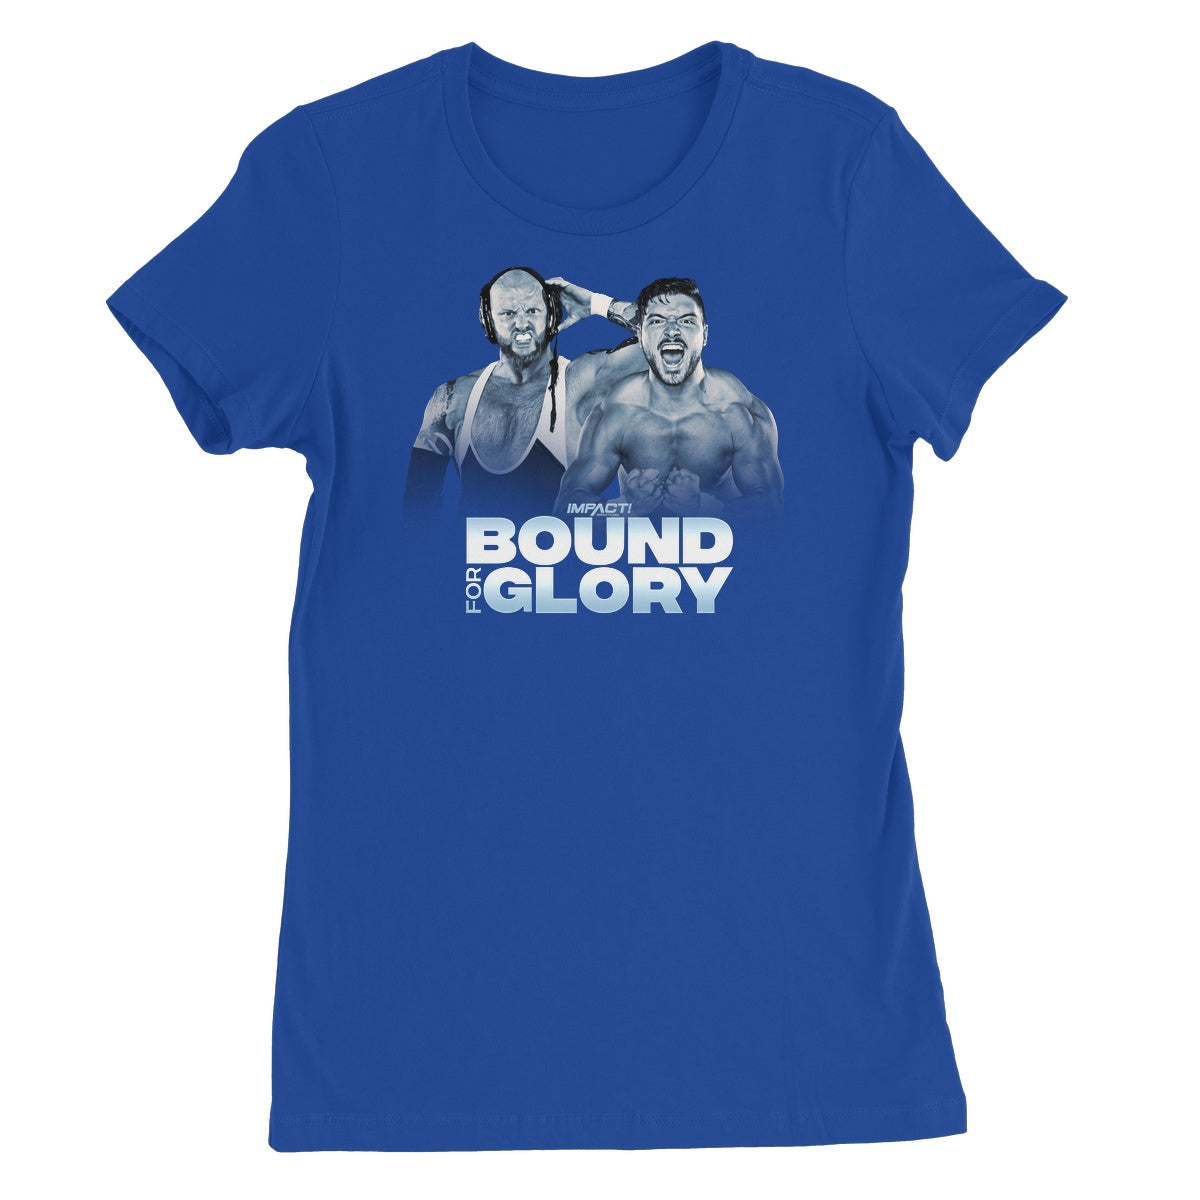 Bound For Glory 2020 - The North Women's Favourite T-Shirt